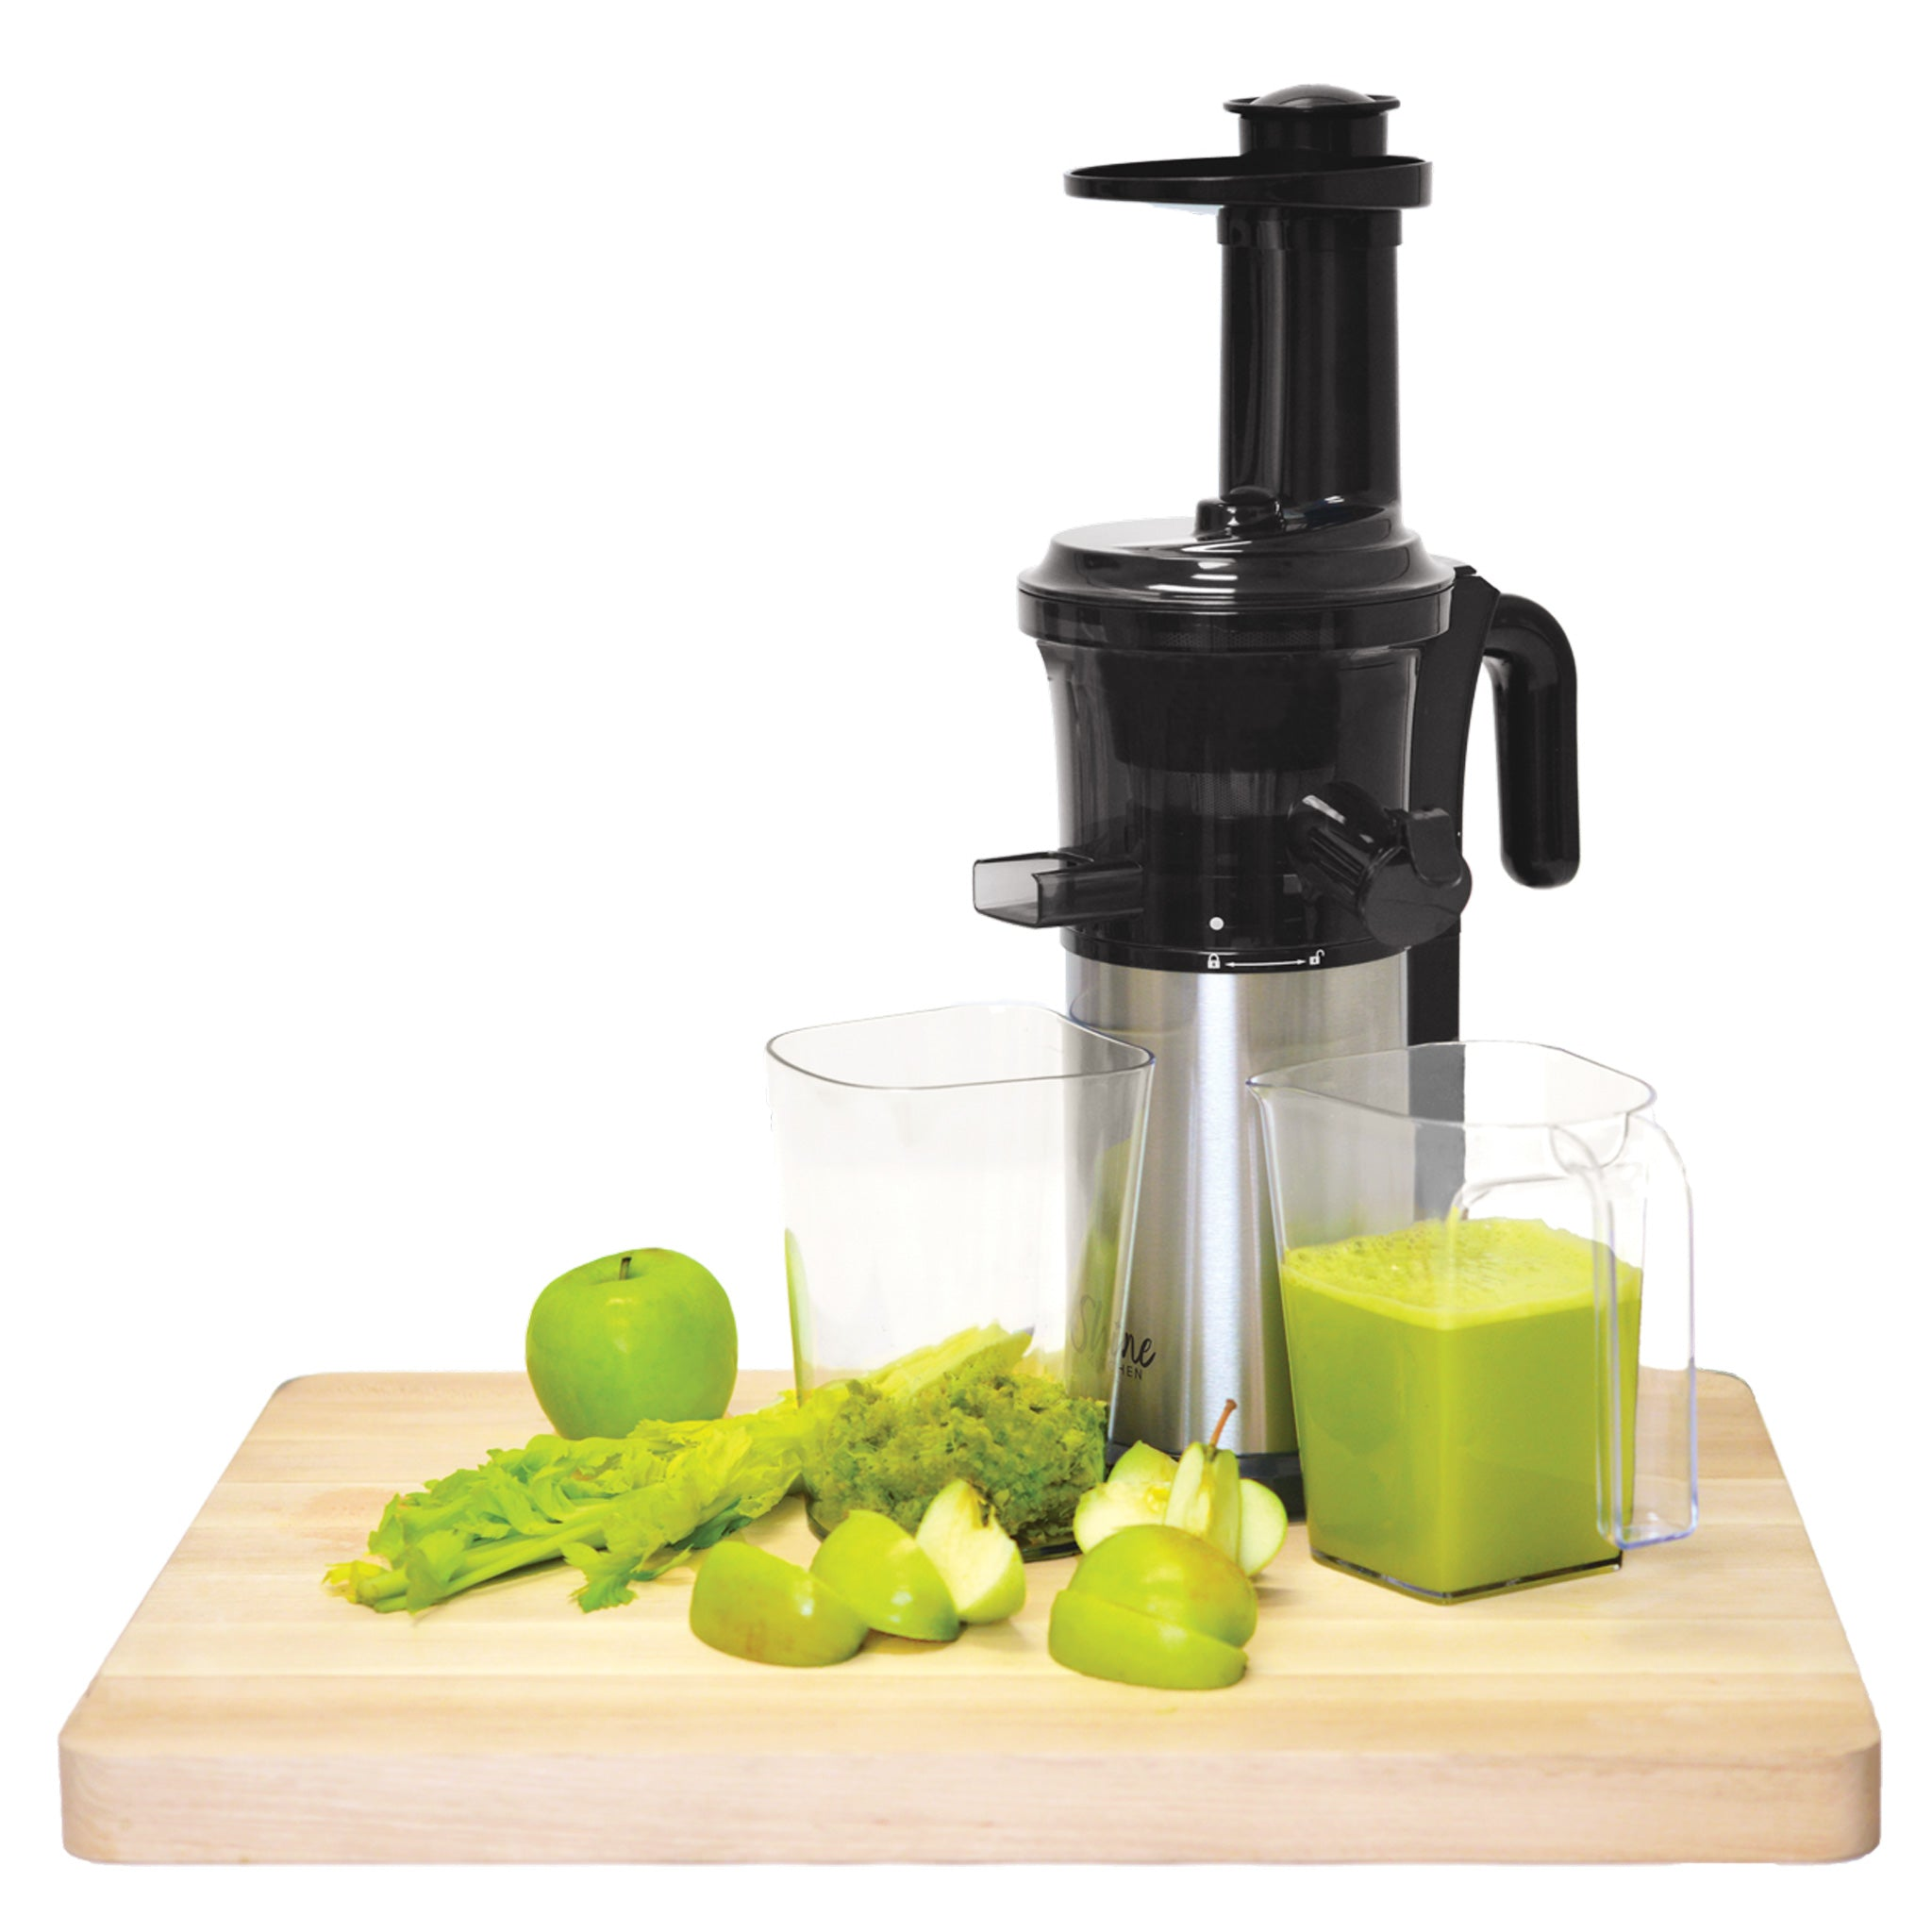 Shine Kitchen Co. Cold Press Vertical Slow Juicer SJV-107 - Tribest